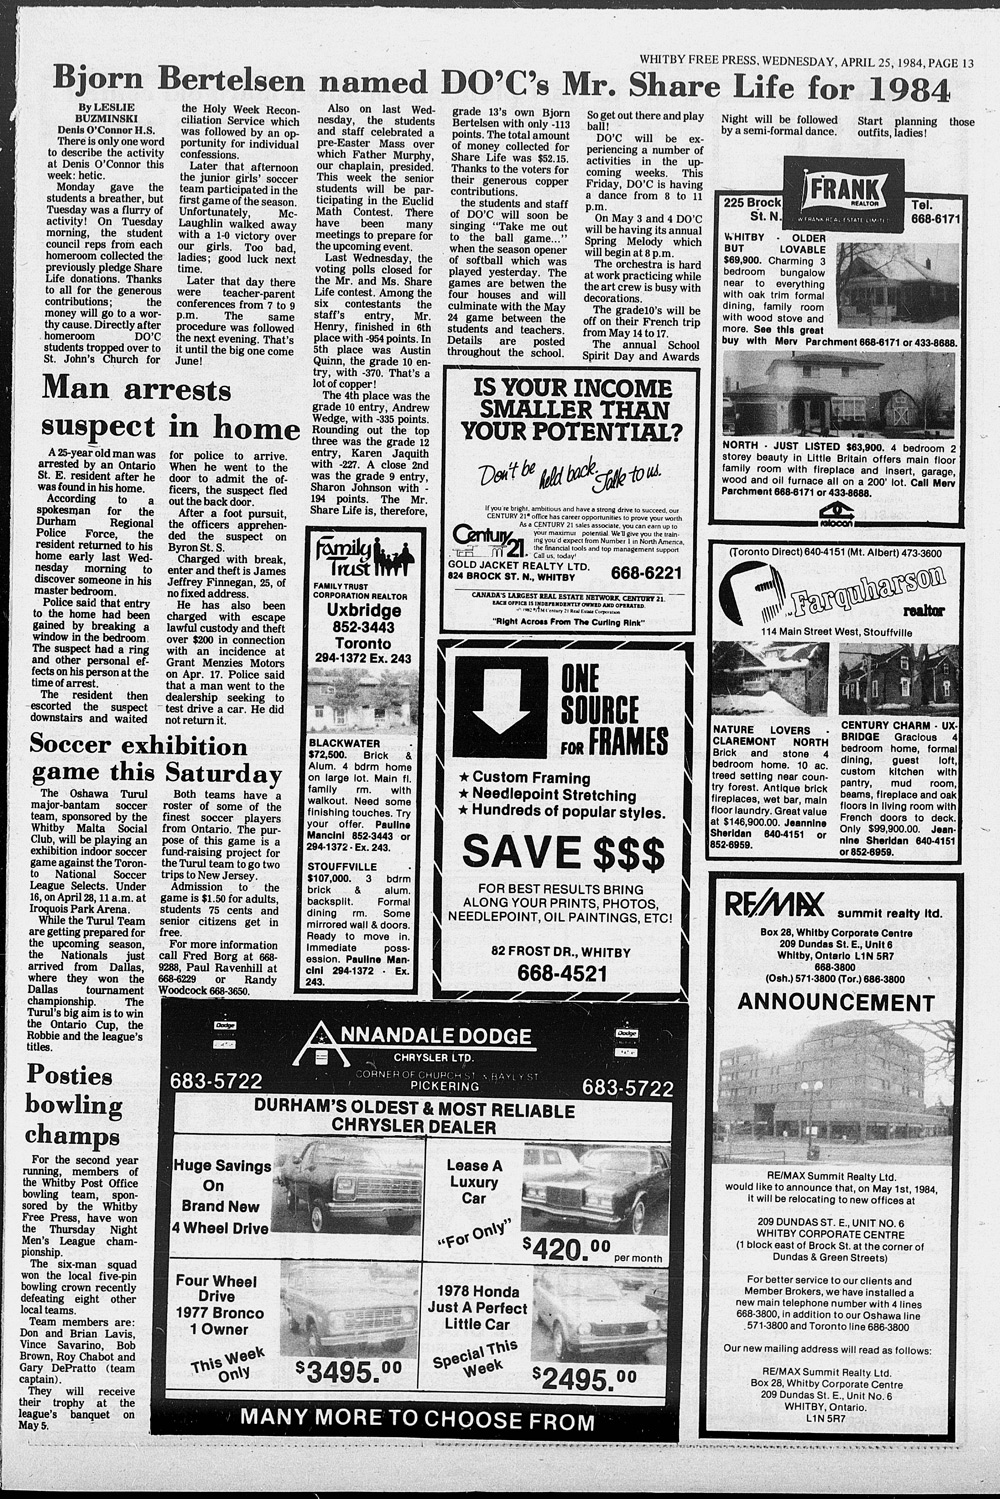 Whitby Free Press, 25 Apr 1984